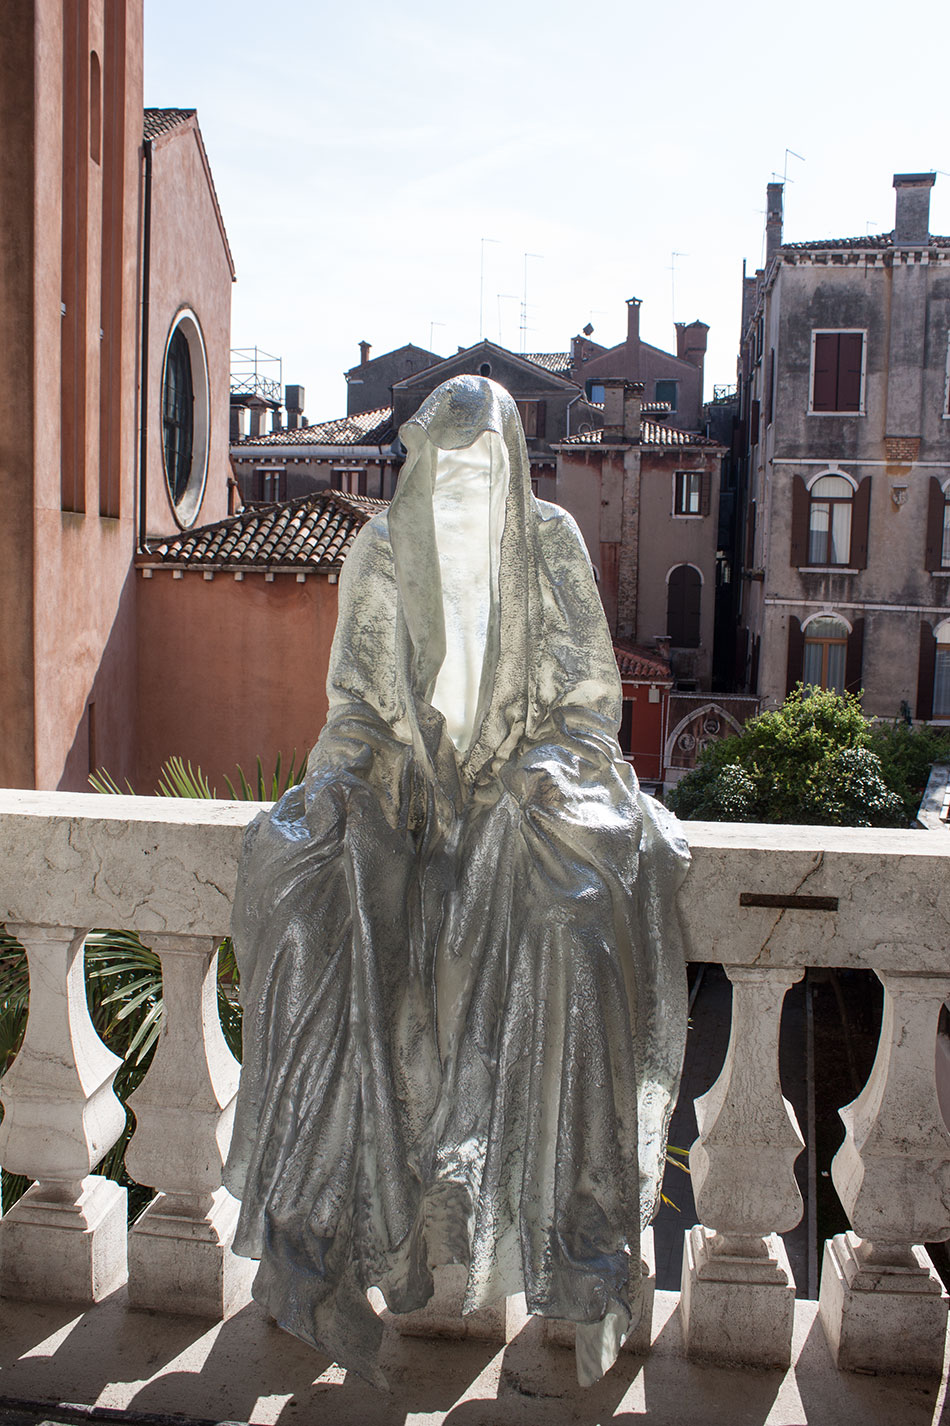 la-biennale-venezia-arte-venice-personal-structures- time-space-existance-art-foundation-guardians-of-time-manfred-kili-kielnhofer-contemporary-art-arts-design-sculpture-8247